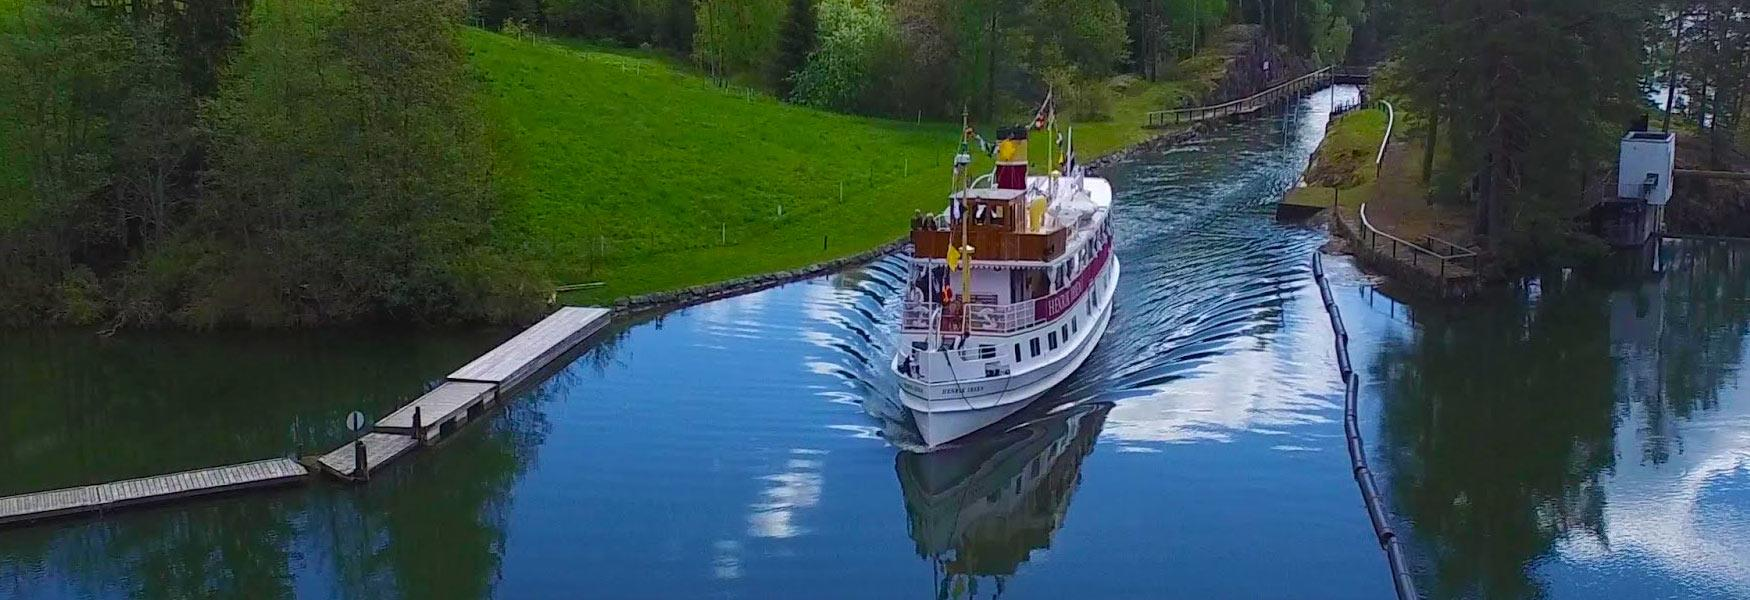 Enjoy the beautiful Telemark Canal